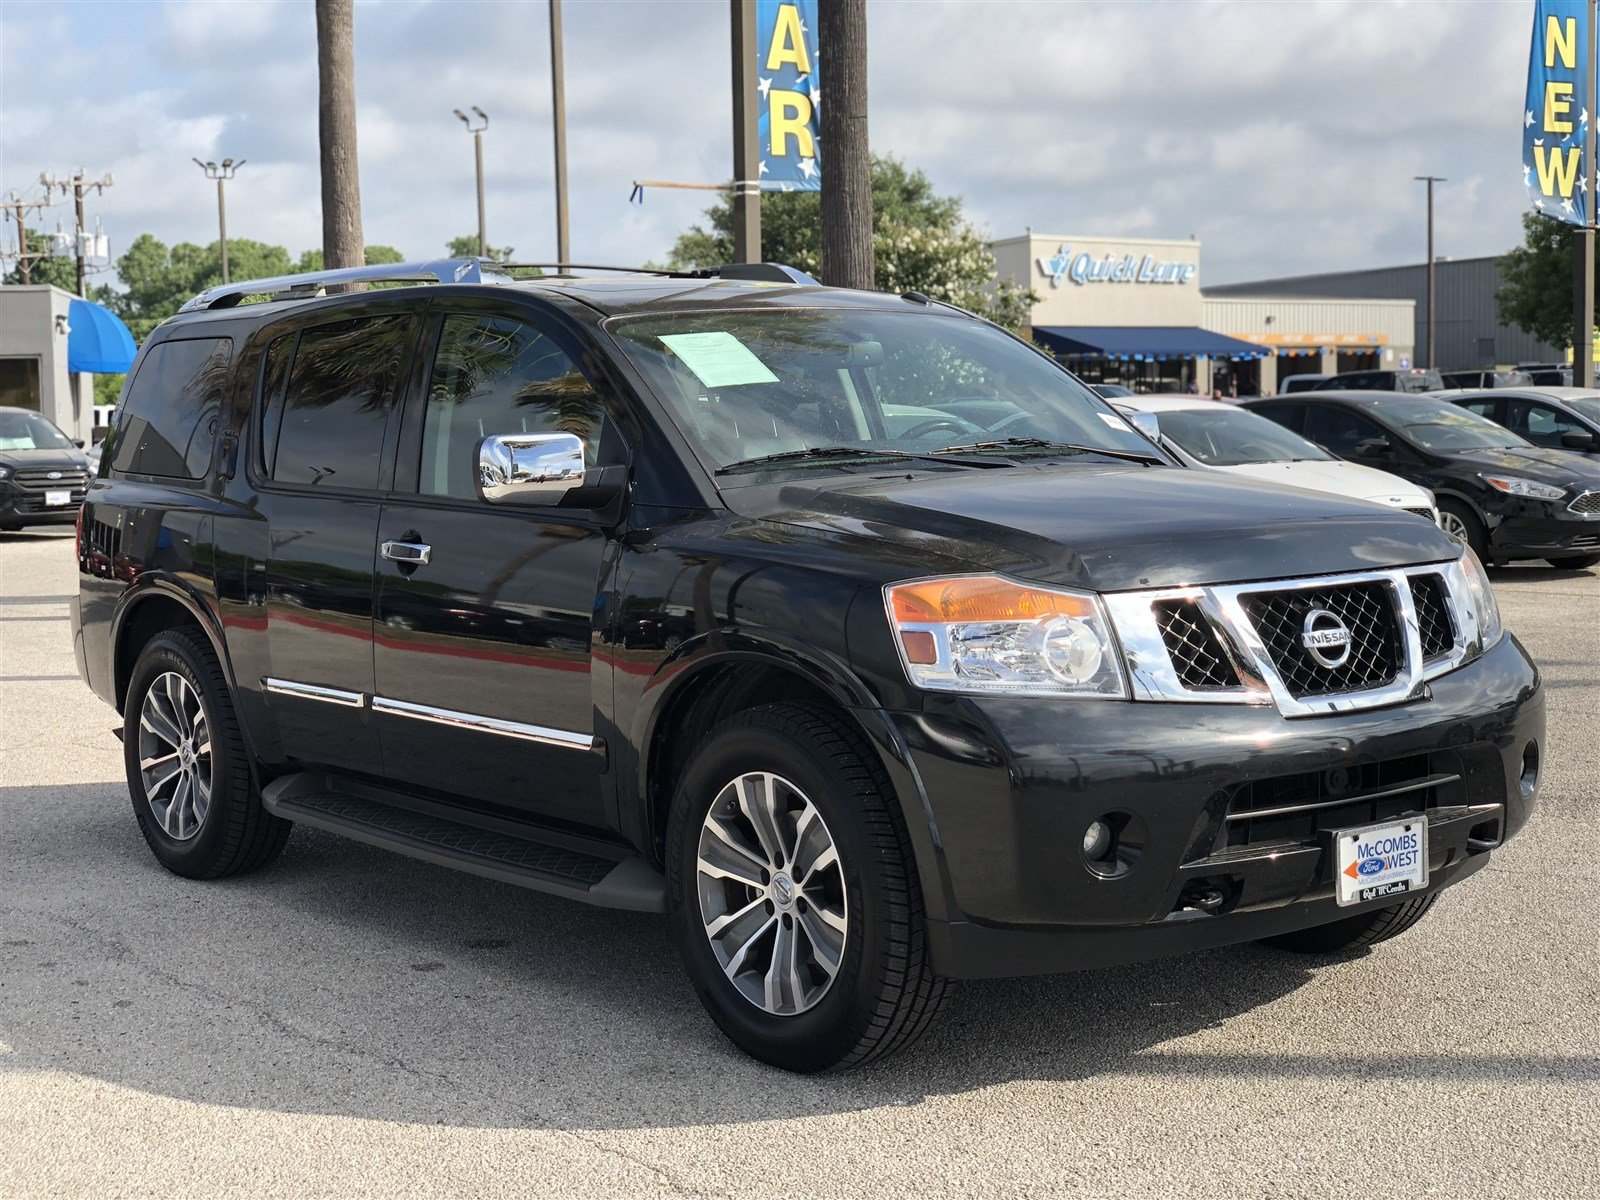 spondent car first nissan and pathfinder armada drive wordpress titan